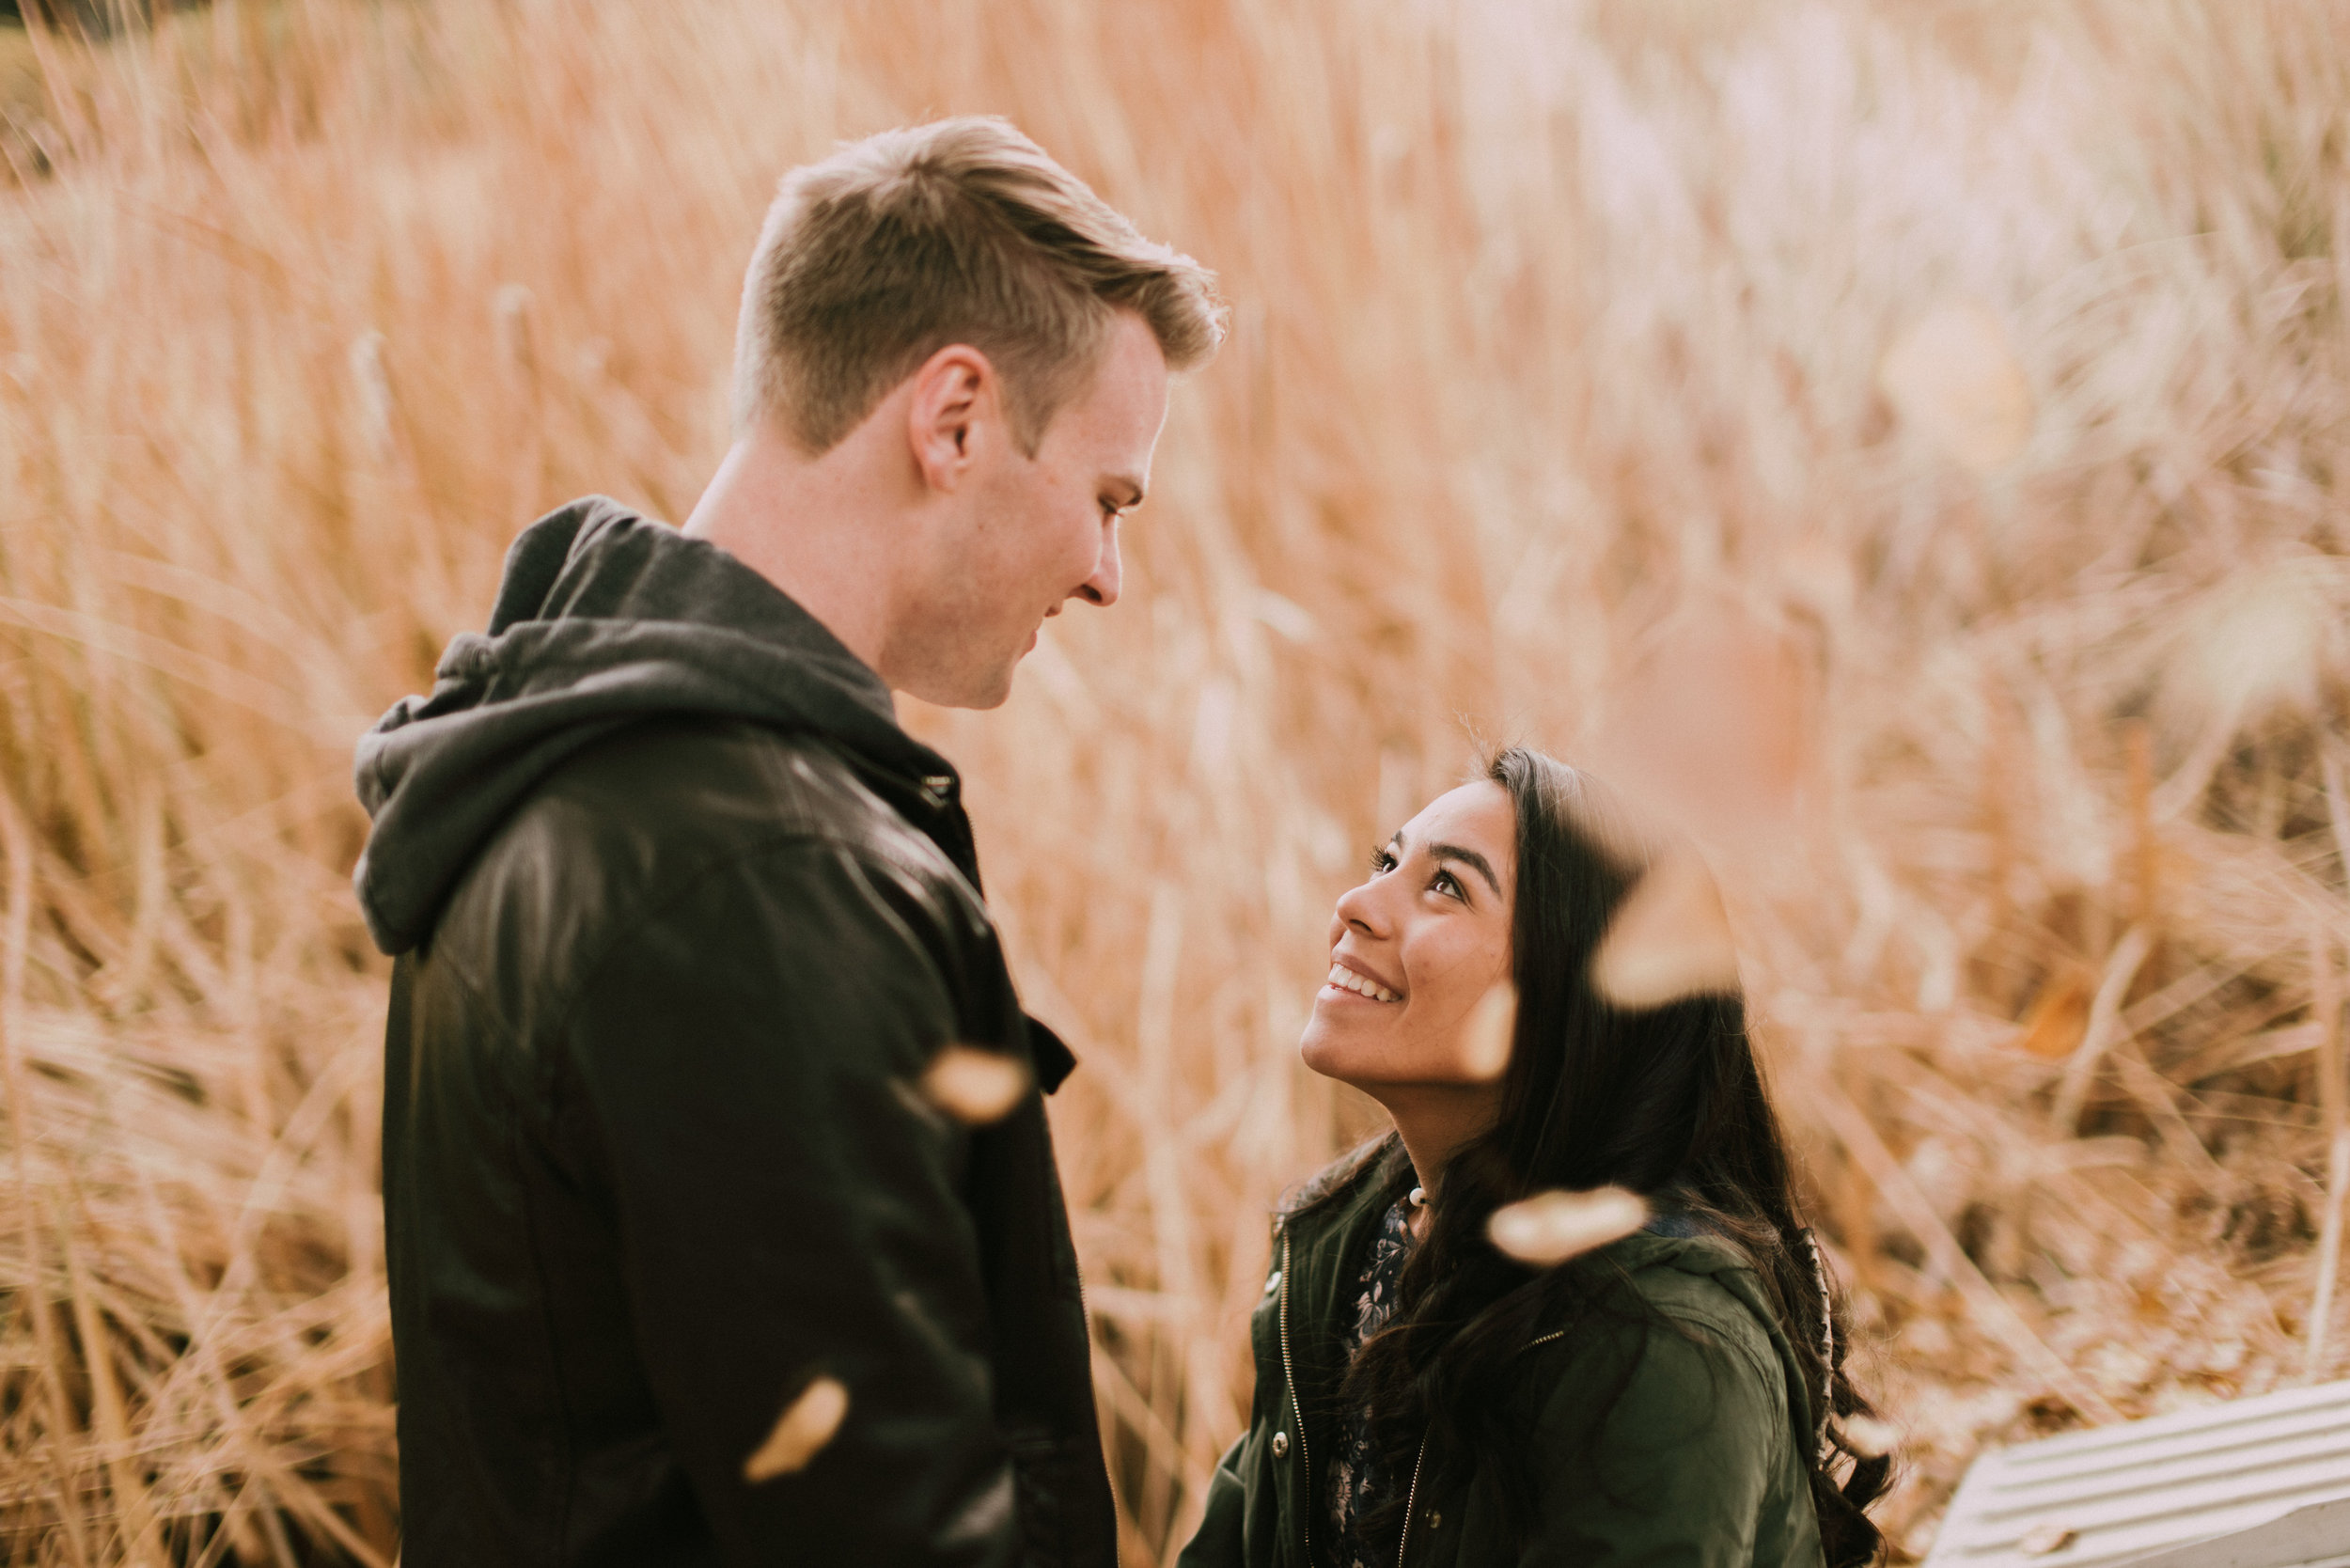 Kevin & Emily Engagment - Pine Mountain Club - Jake and Kim Photography-58.jpg